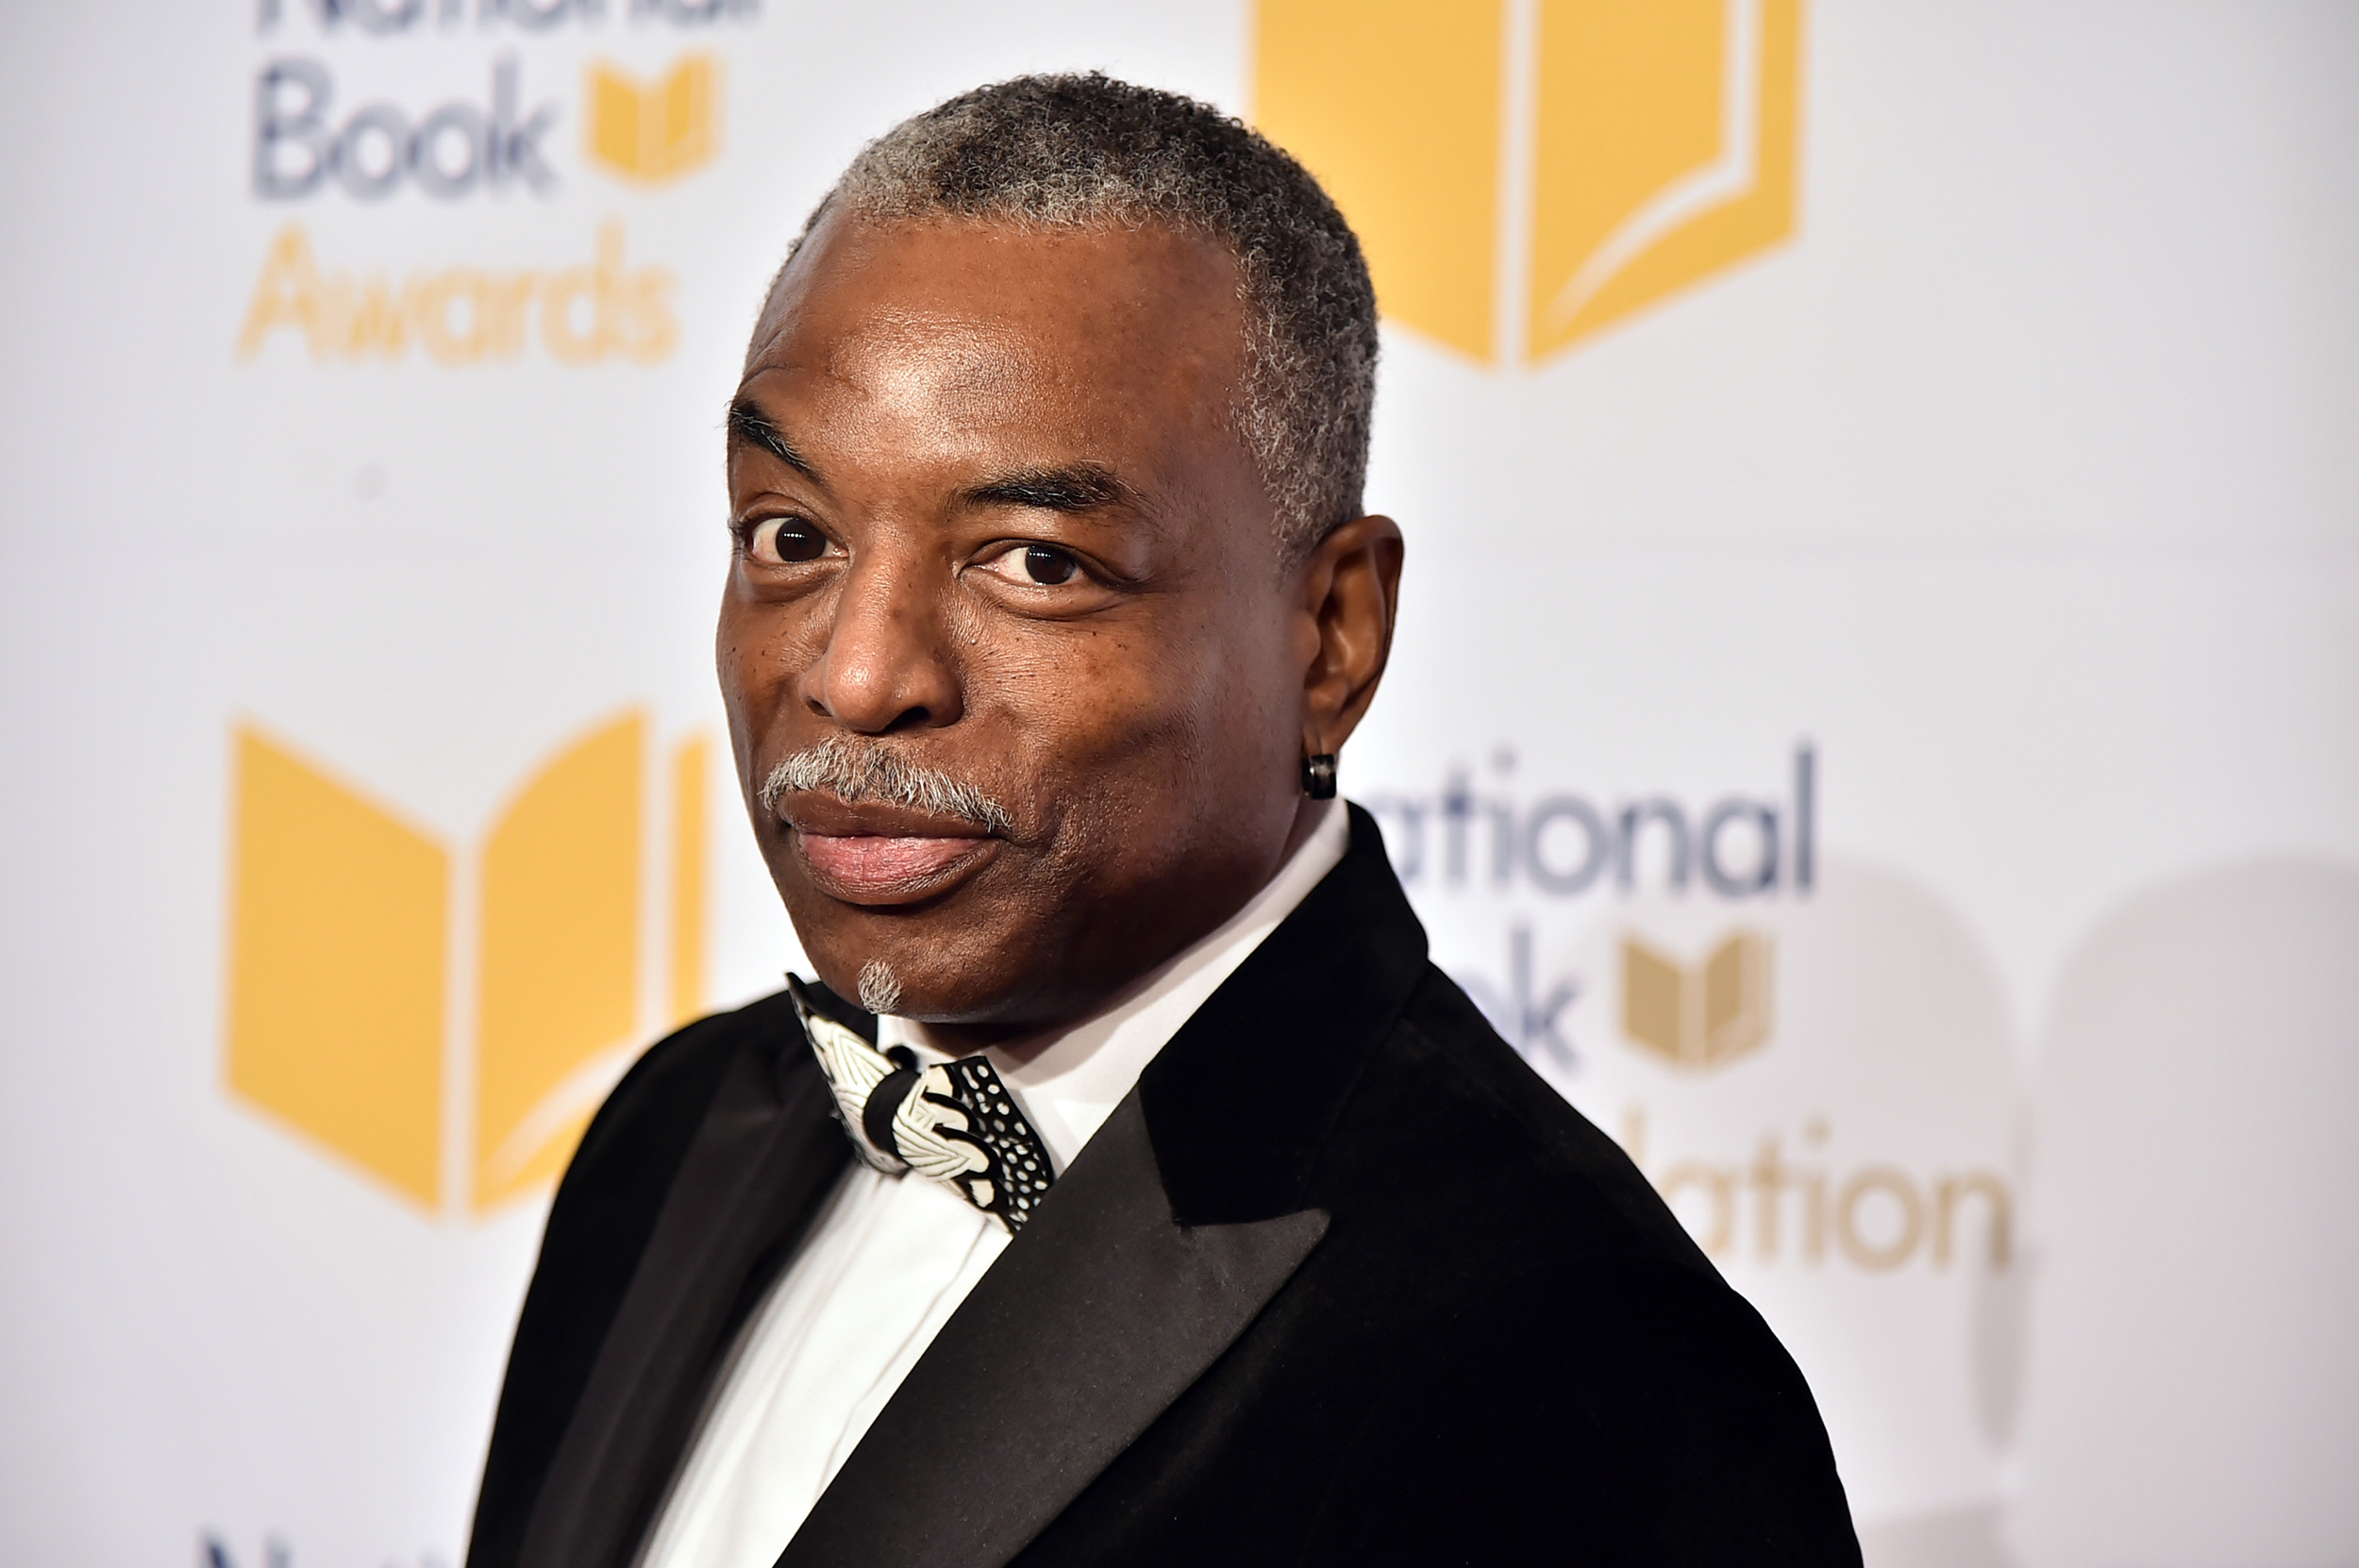 LeVar Burton reacts to petition calling for him to host 'Jeopardy' 4/10/21